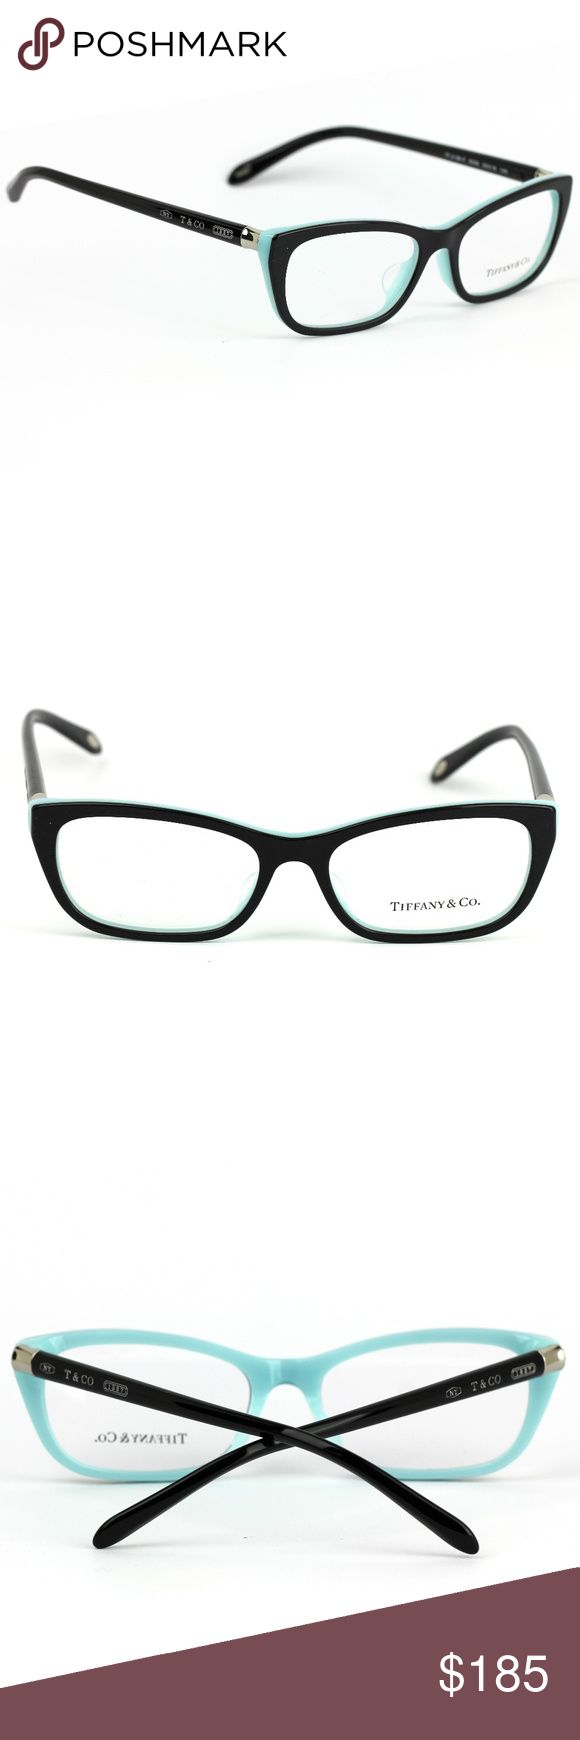 Tiffany & Co 2136 Eyeglasses Black and Blue Frame Tiffany & Co. Cat eye eyeglasses. Black and blue prescription eye frames. Guaranteed authentic. Retail Price: $295.00  New, old stock in excellent condition. Comes with case only. All pictures provided are of the actual item for sale. TEMPLE: 140mm BRIDGE: 16mm LENS: 53mm Tiffany & Co. Accessories Glasses